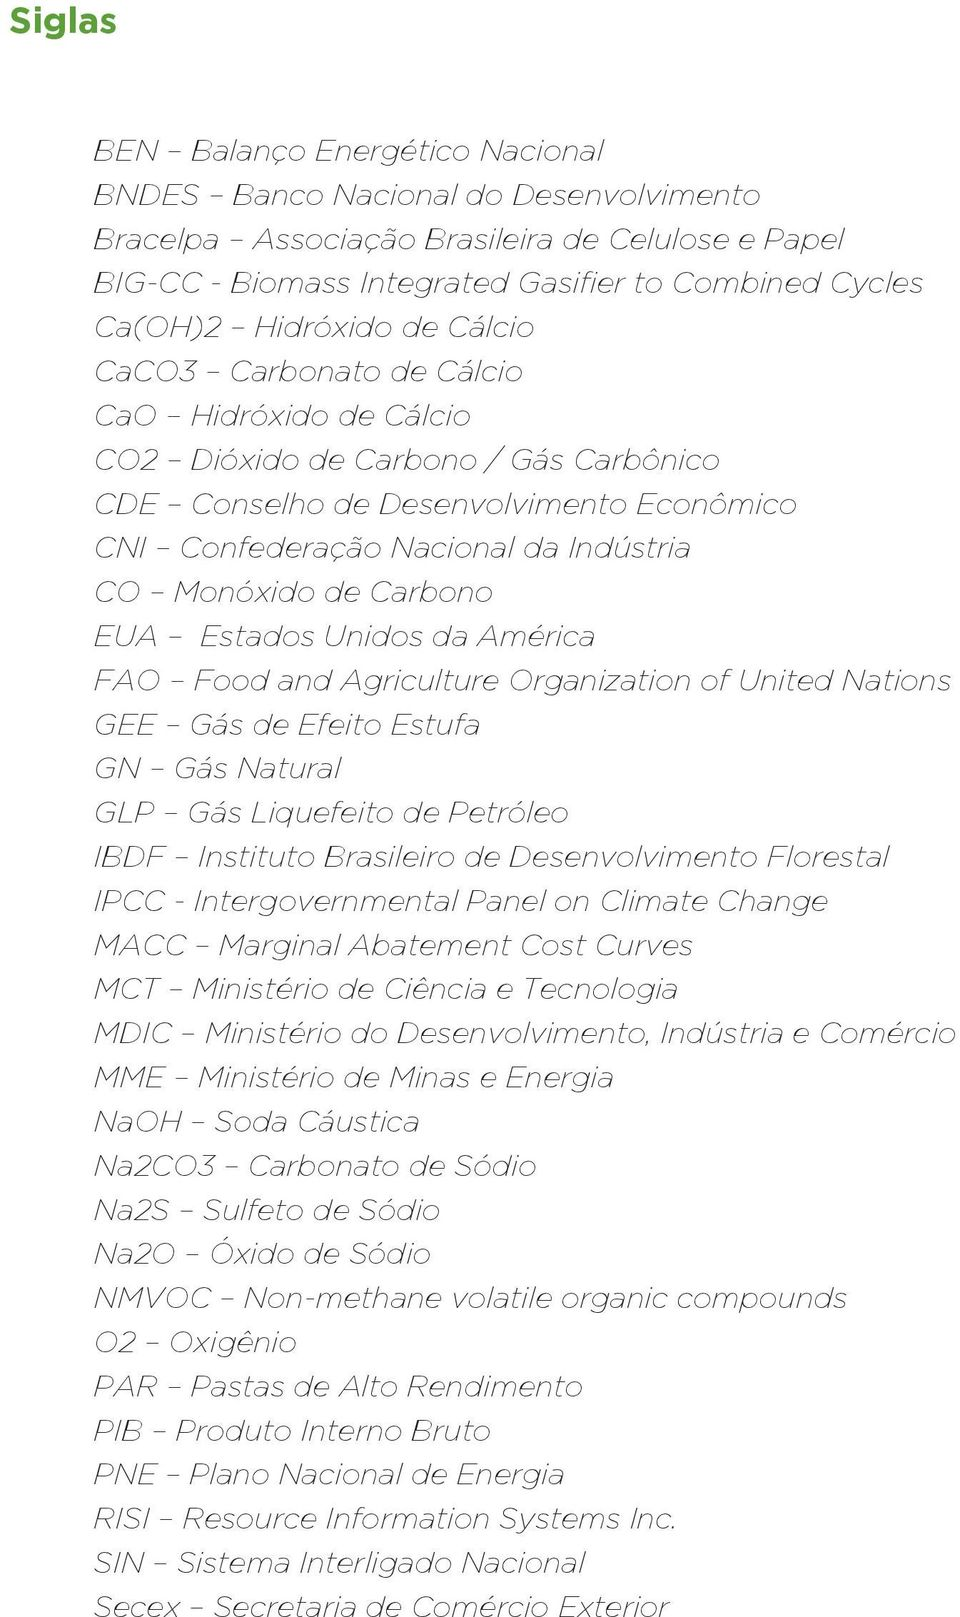 Monóxido de Carbono EUA Estados Unidos da América FAO Food and Agriculture Organization of United Nations GEE Gás de Efeito Estufa GN Gás Natural GLP Gás Liquefeito de Petróleo IBDF Instituto